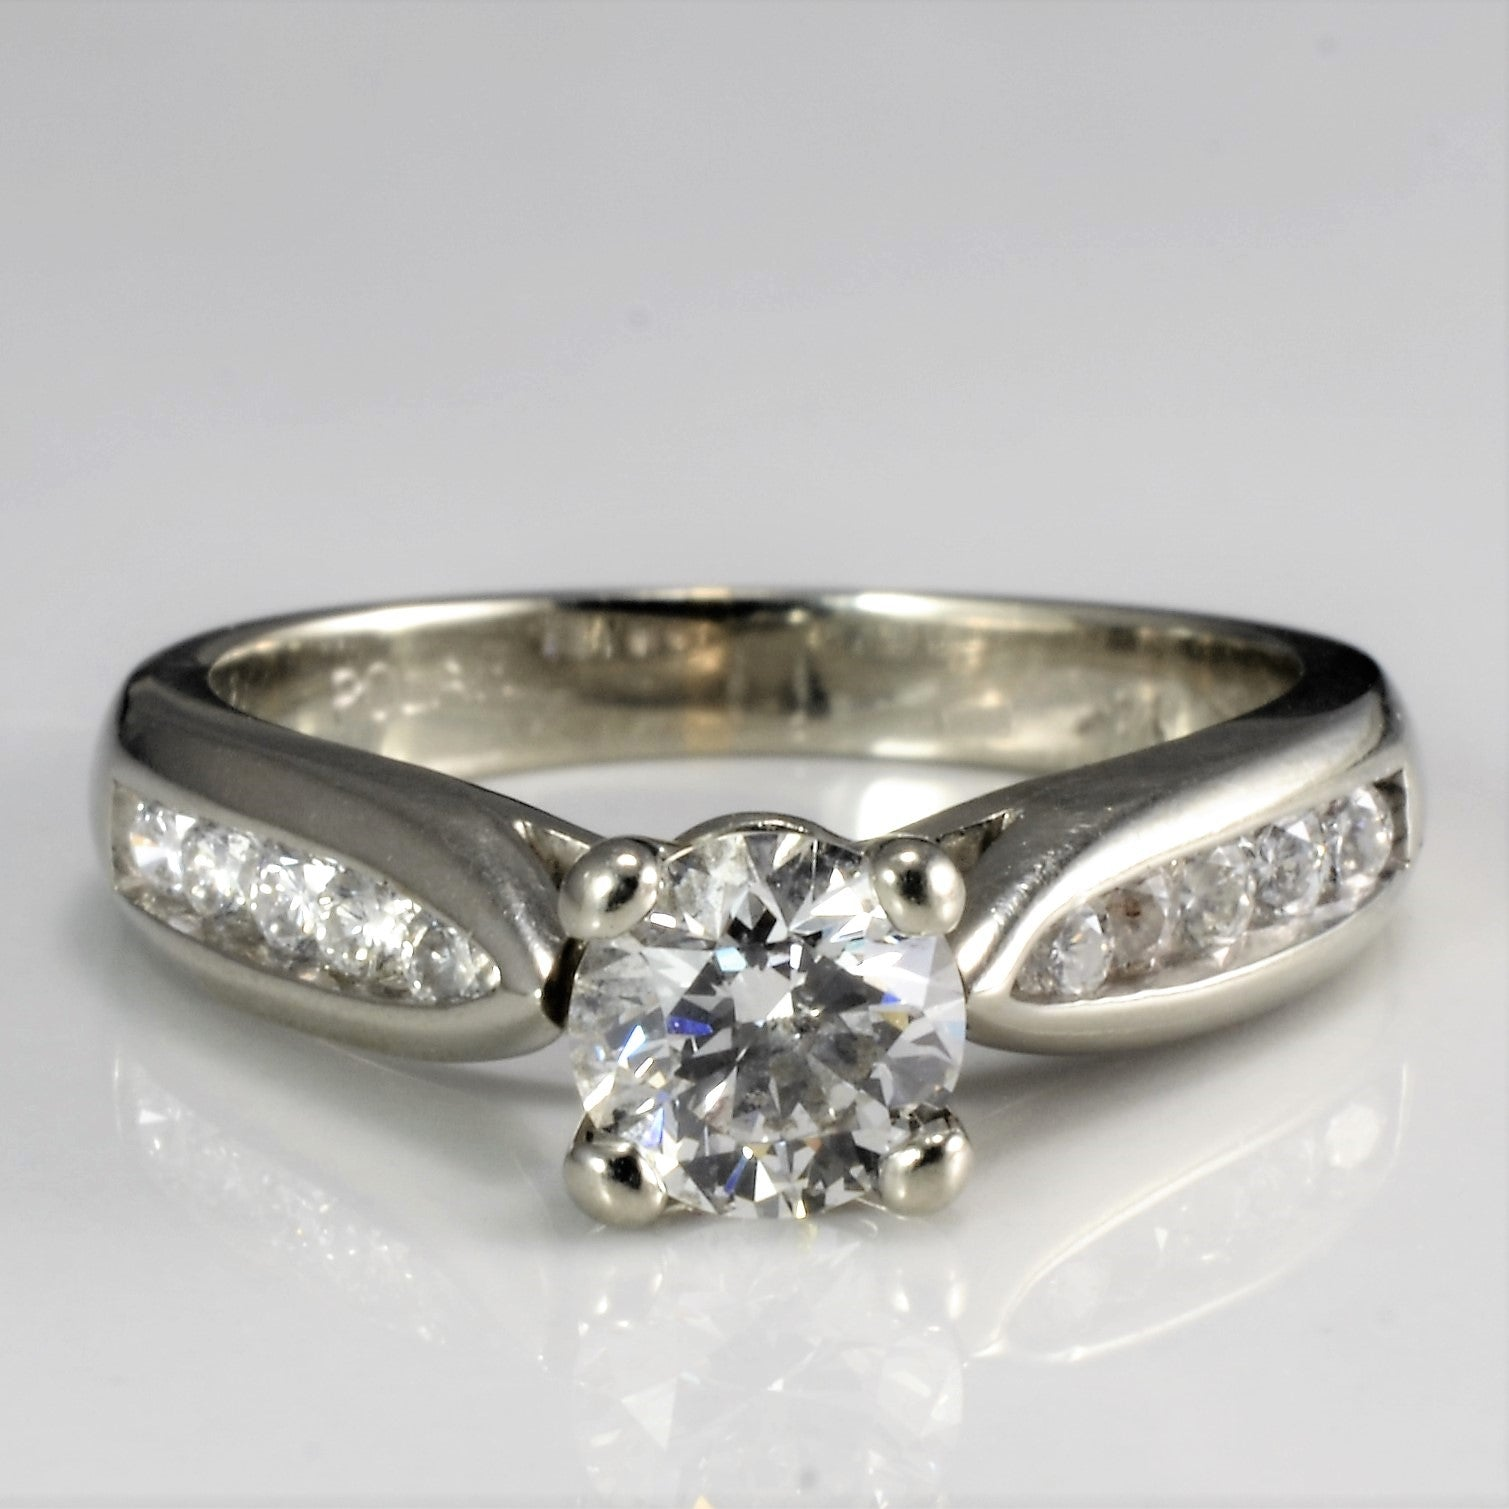 Prong St Diamond & Accents Engagement Ring | 0.63 ctw, SZ 5 |